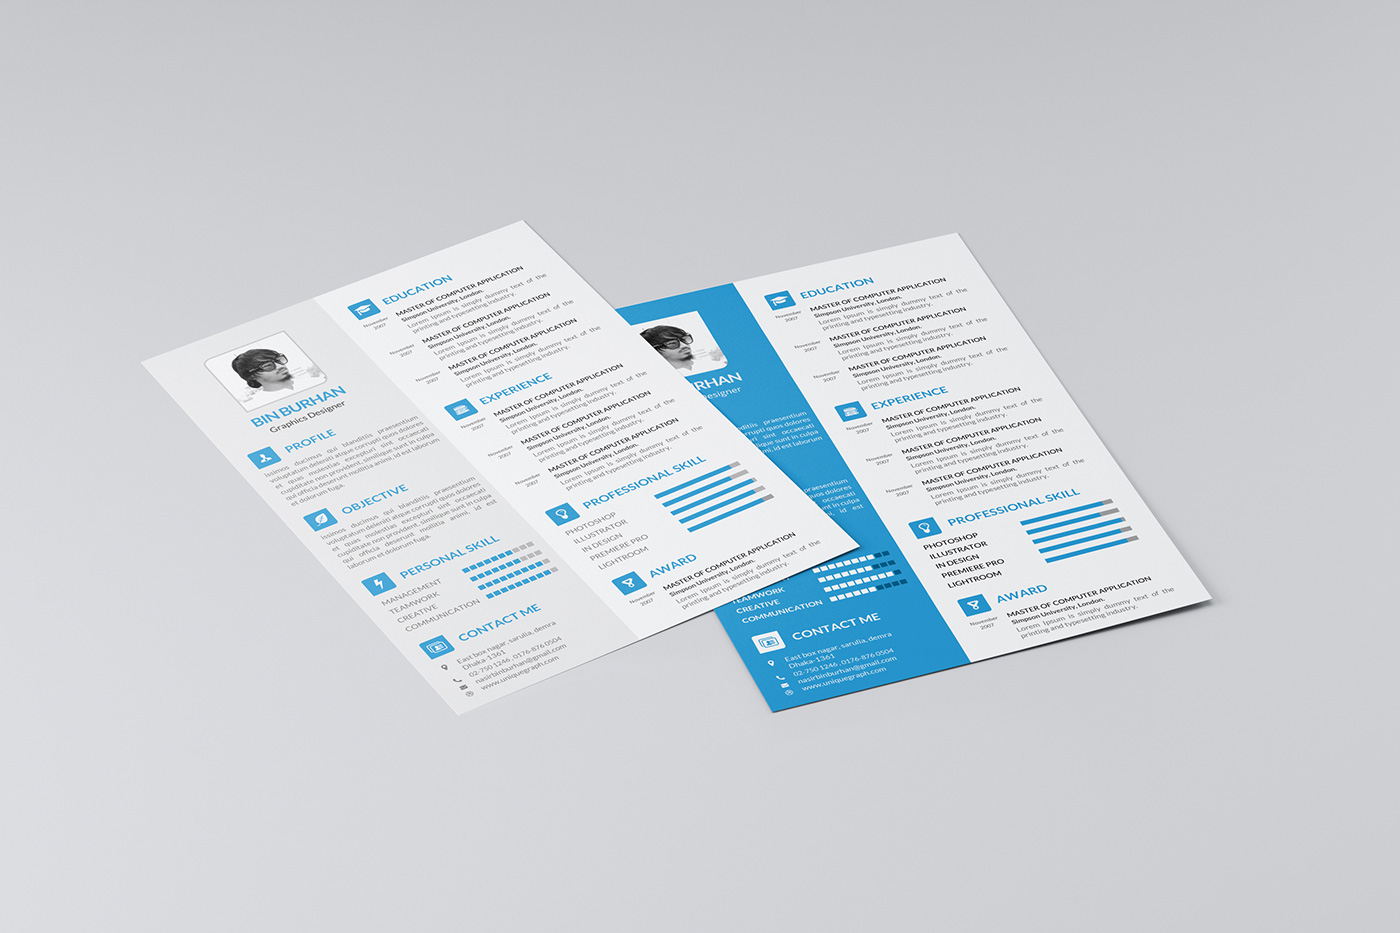 bie resume template cv on behance if you need cv or resume a new look which can boost your chances in professional field i will create a professional resume cv according to your